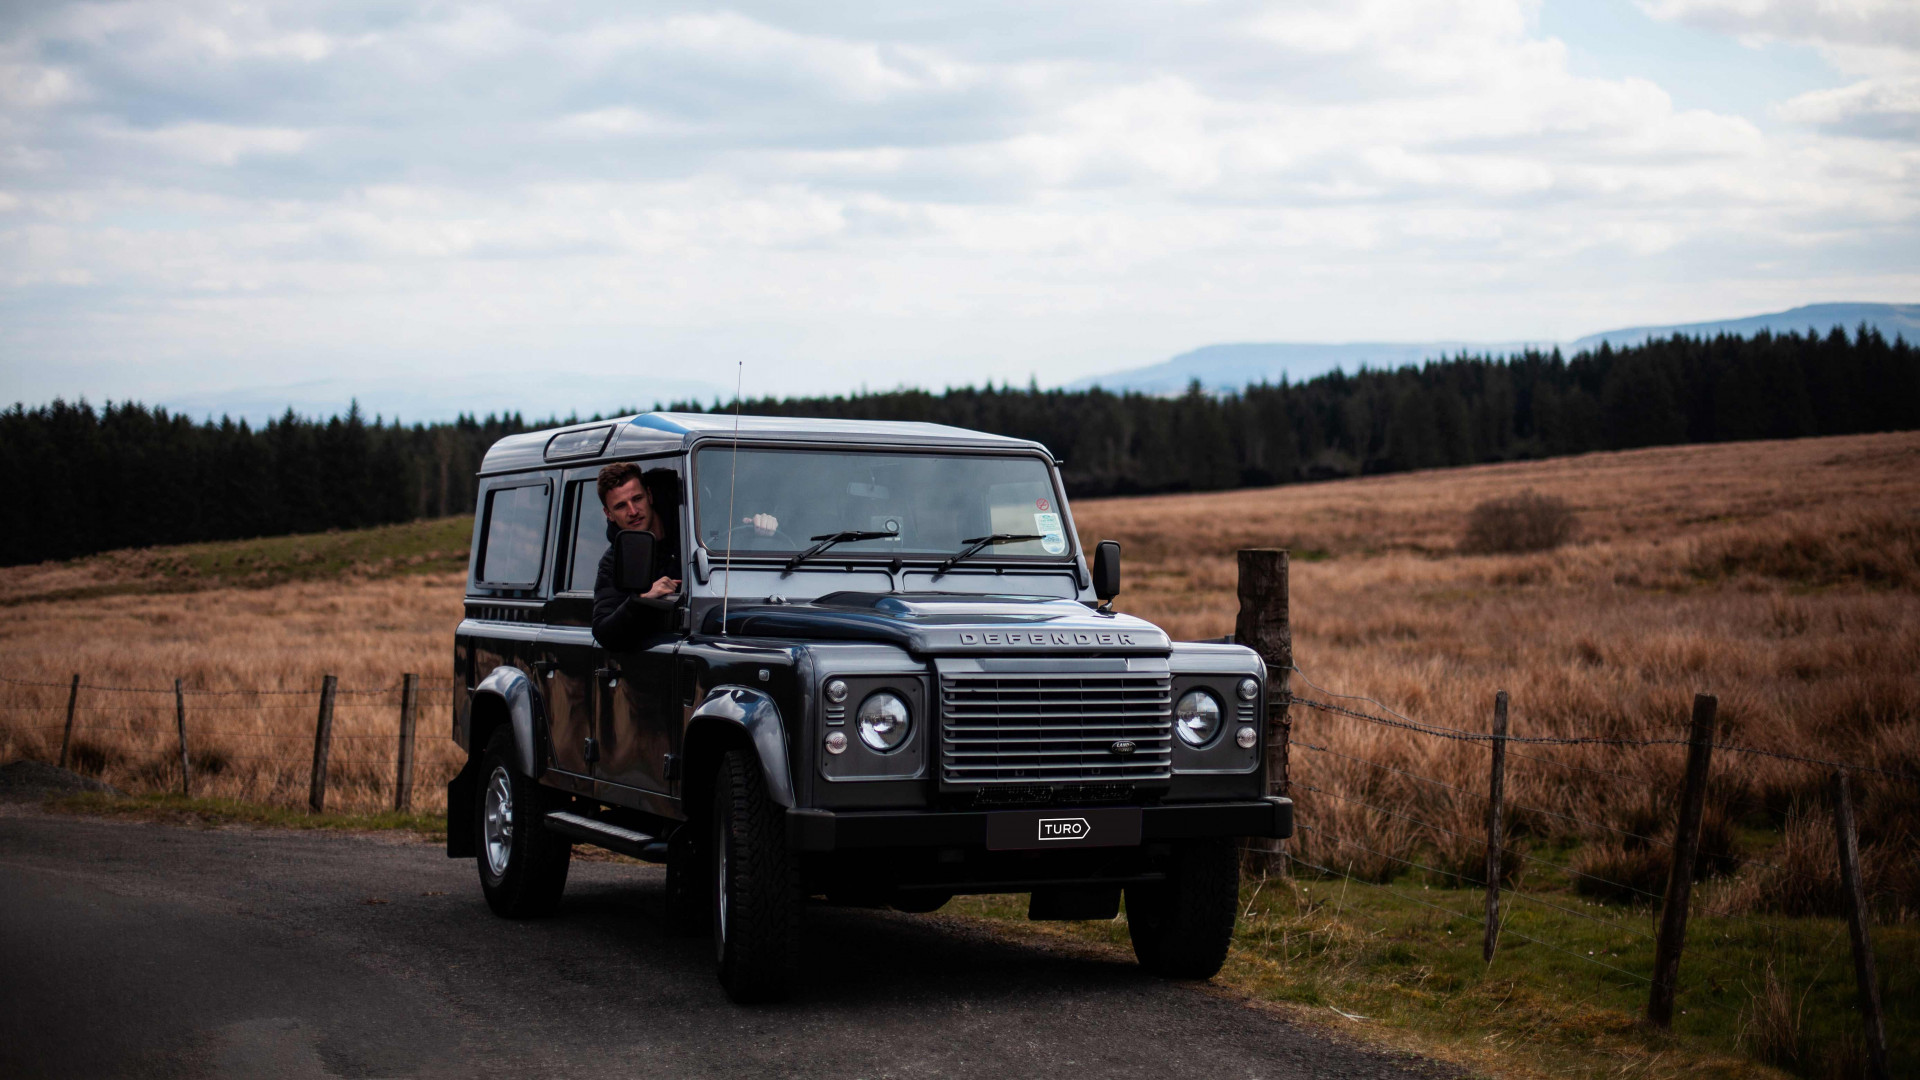 Driving a Land Rover Defender with Turo